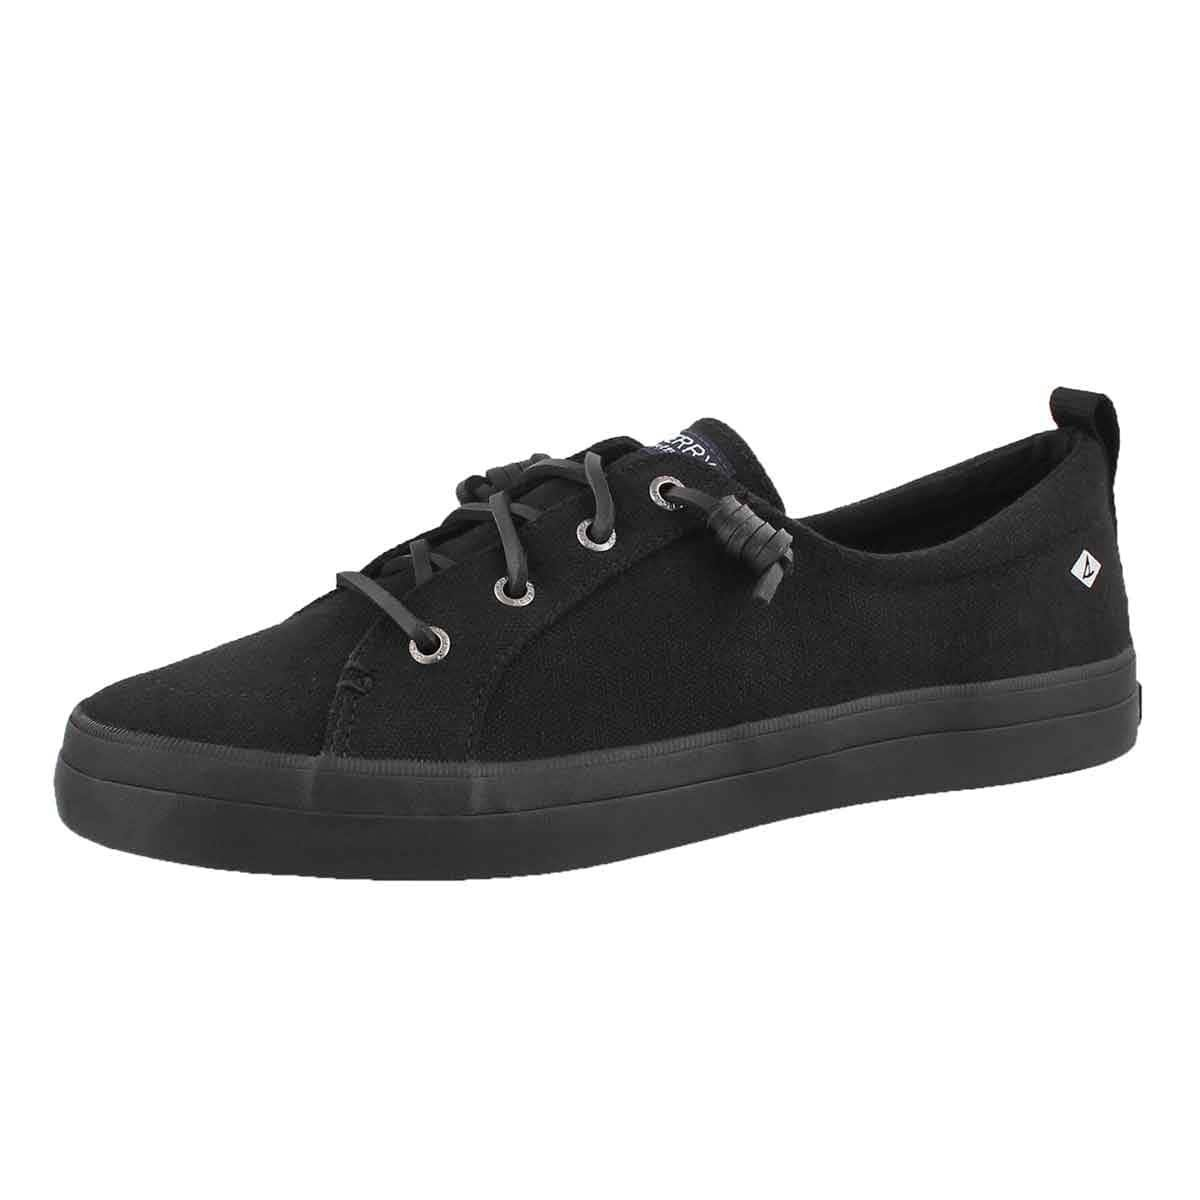 Sperry Top-Sider Crest Vibe Flooded Sneaker B01N2VRRLL 7 B(M) US|Black